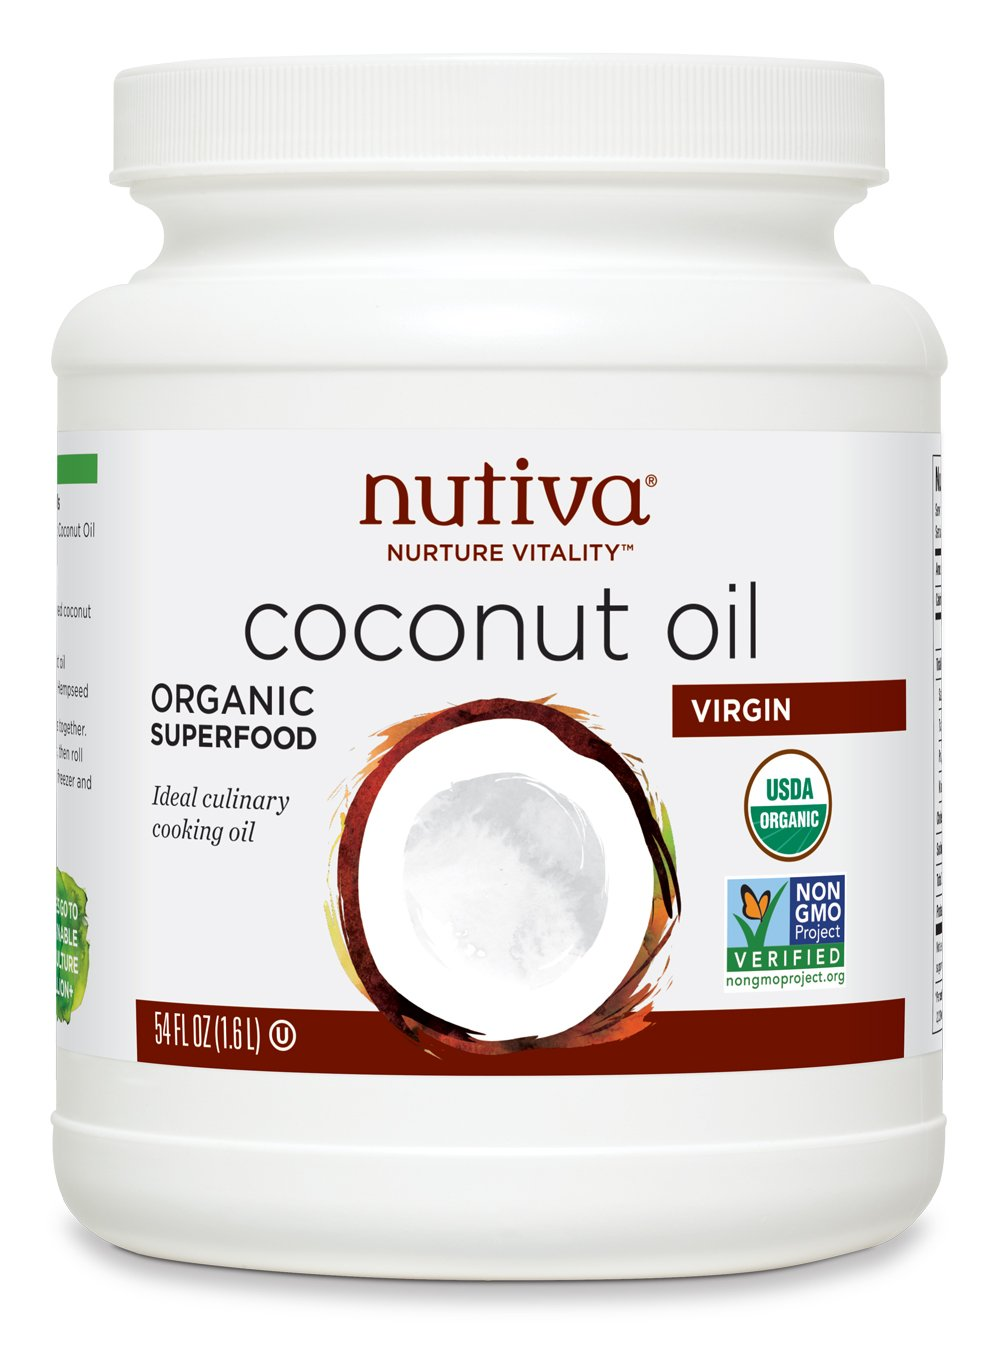 Nutiva Organic, Unrefined, Virgin Coconut Oil, 54 Fl Oz (Pack of 1) by Nutiva